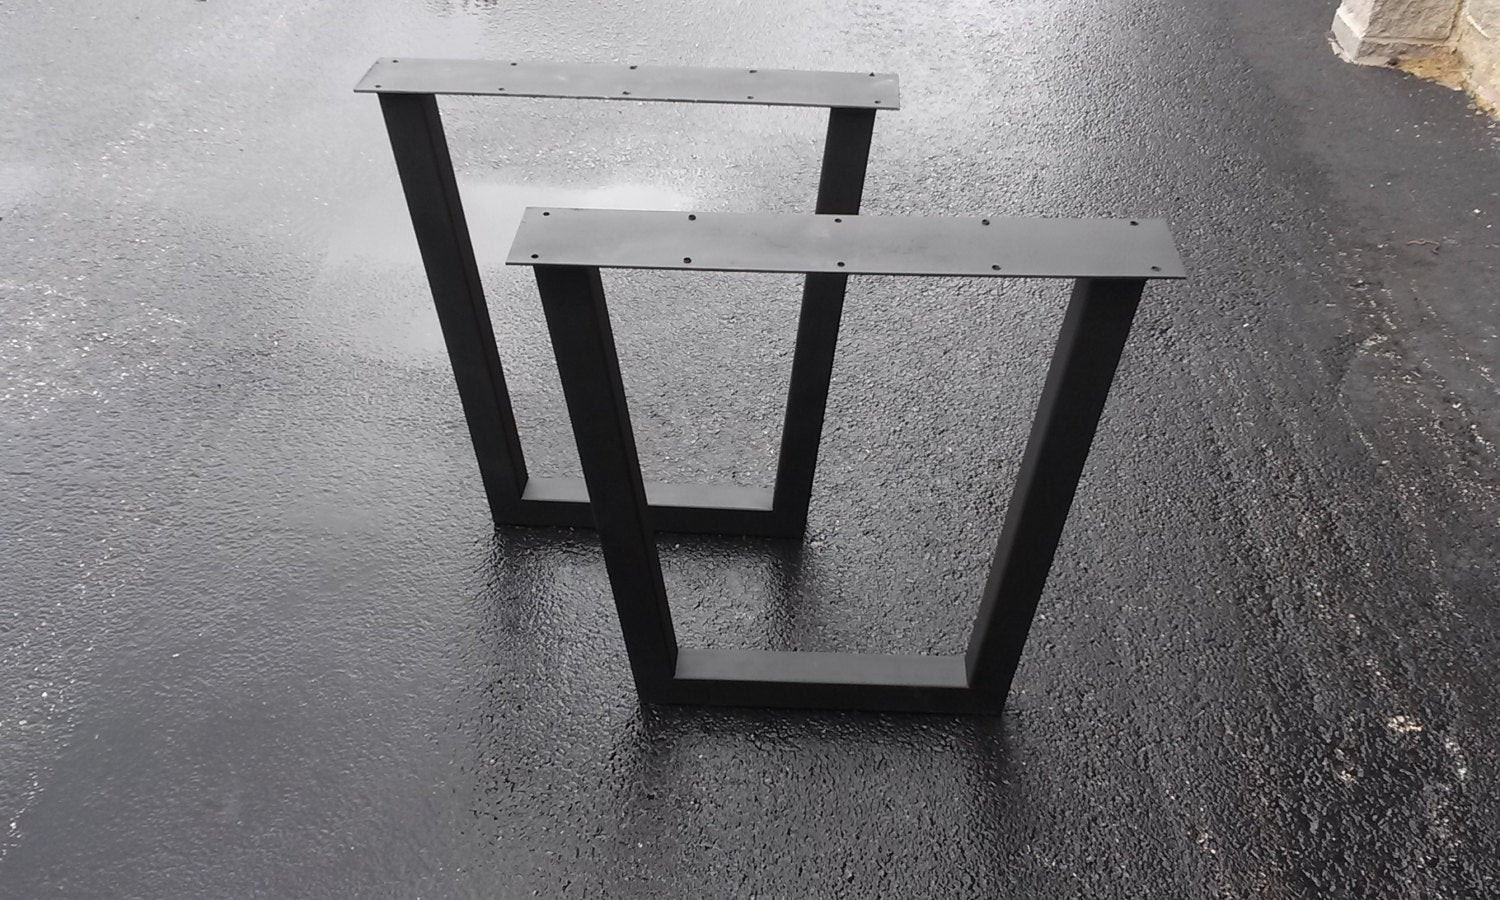 Best ideas about DIY Metal Table Legs . Save or Pin Tapered Metal Table Legs DIY Furniture Frame Any Size Now.